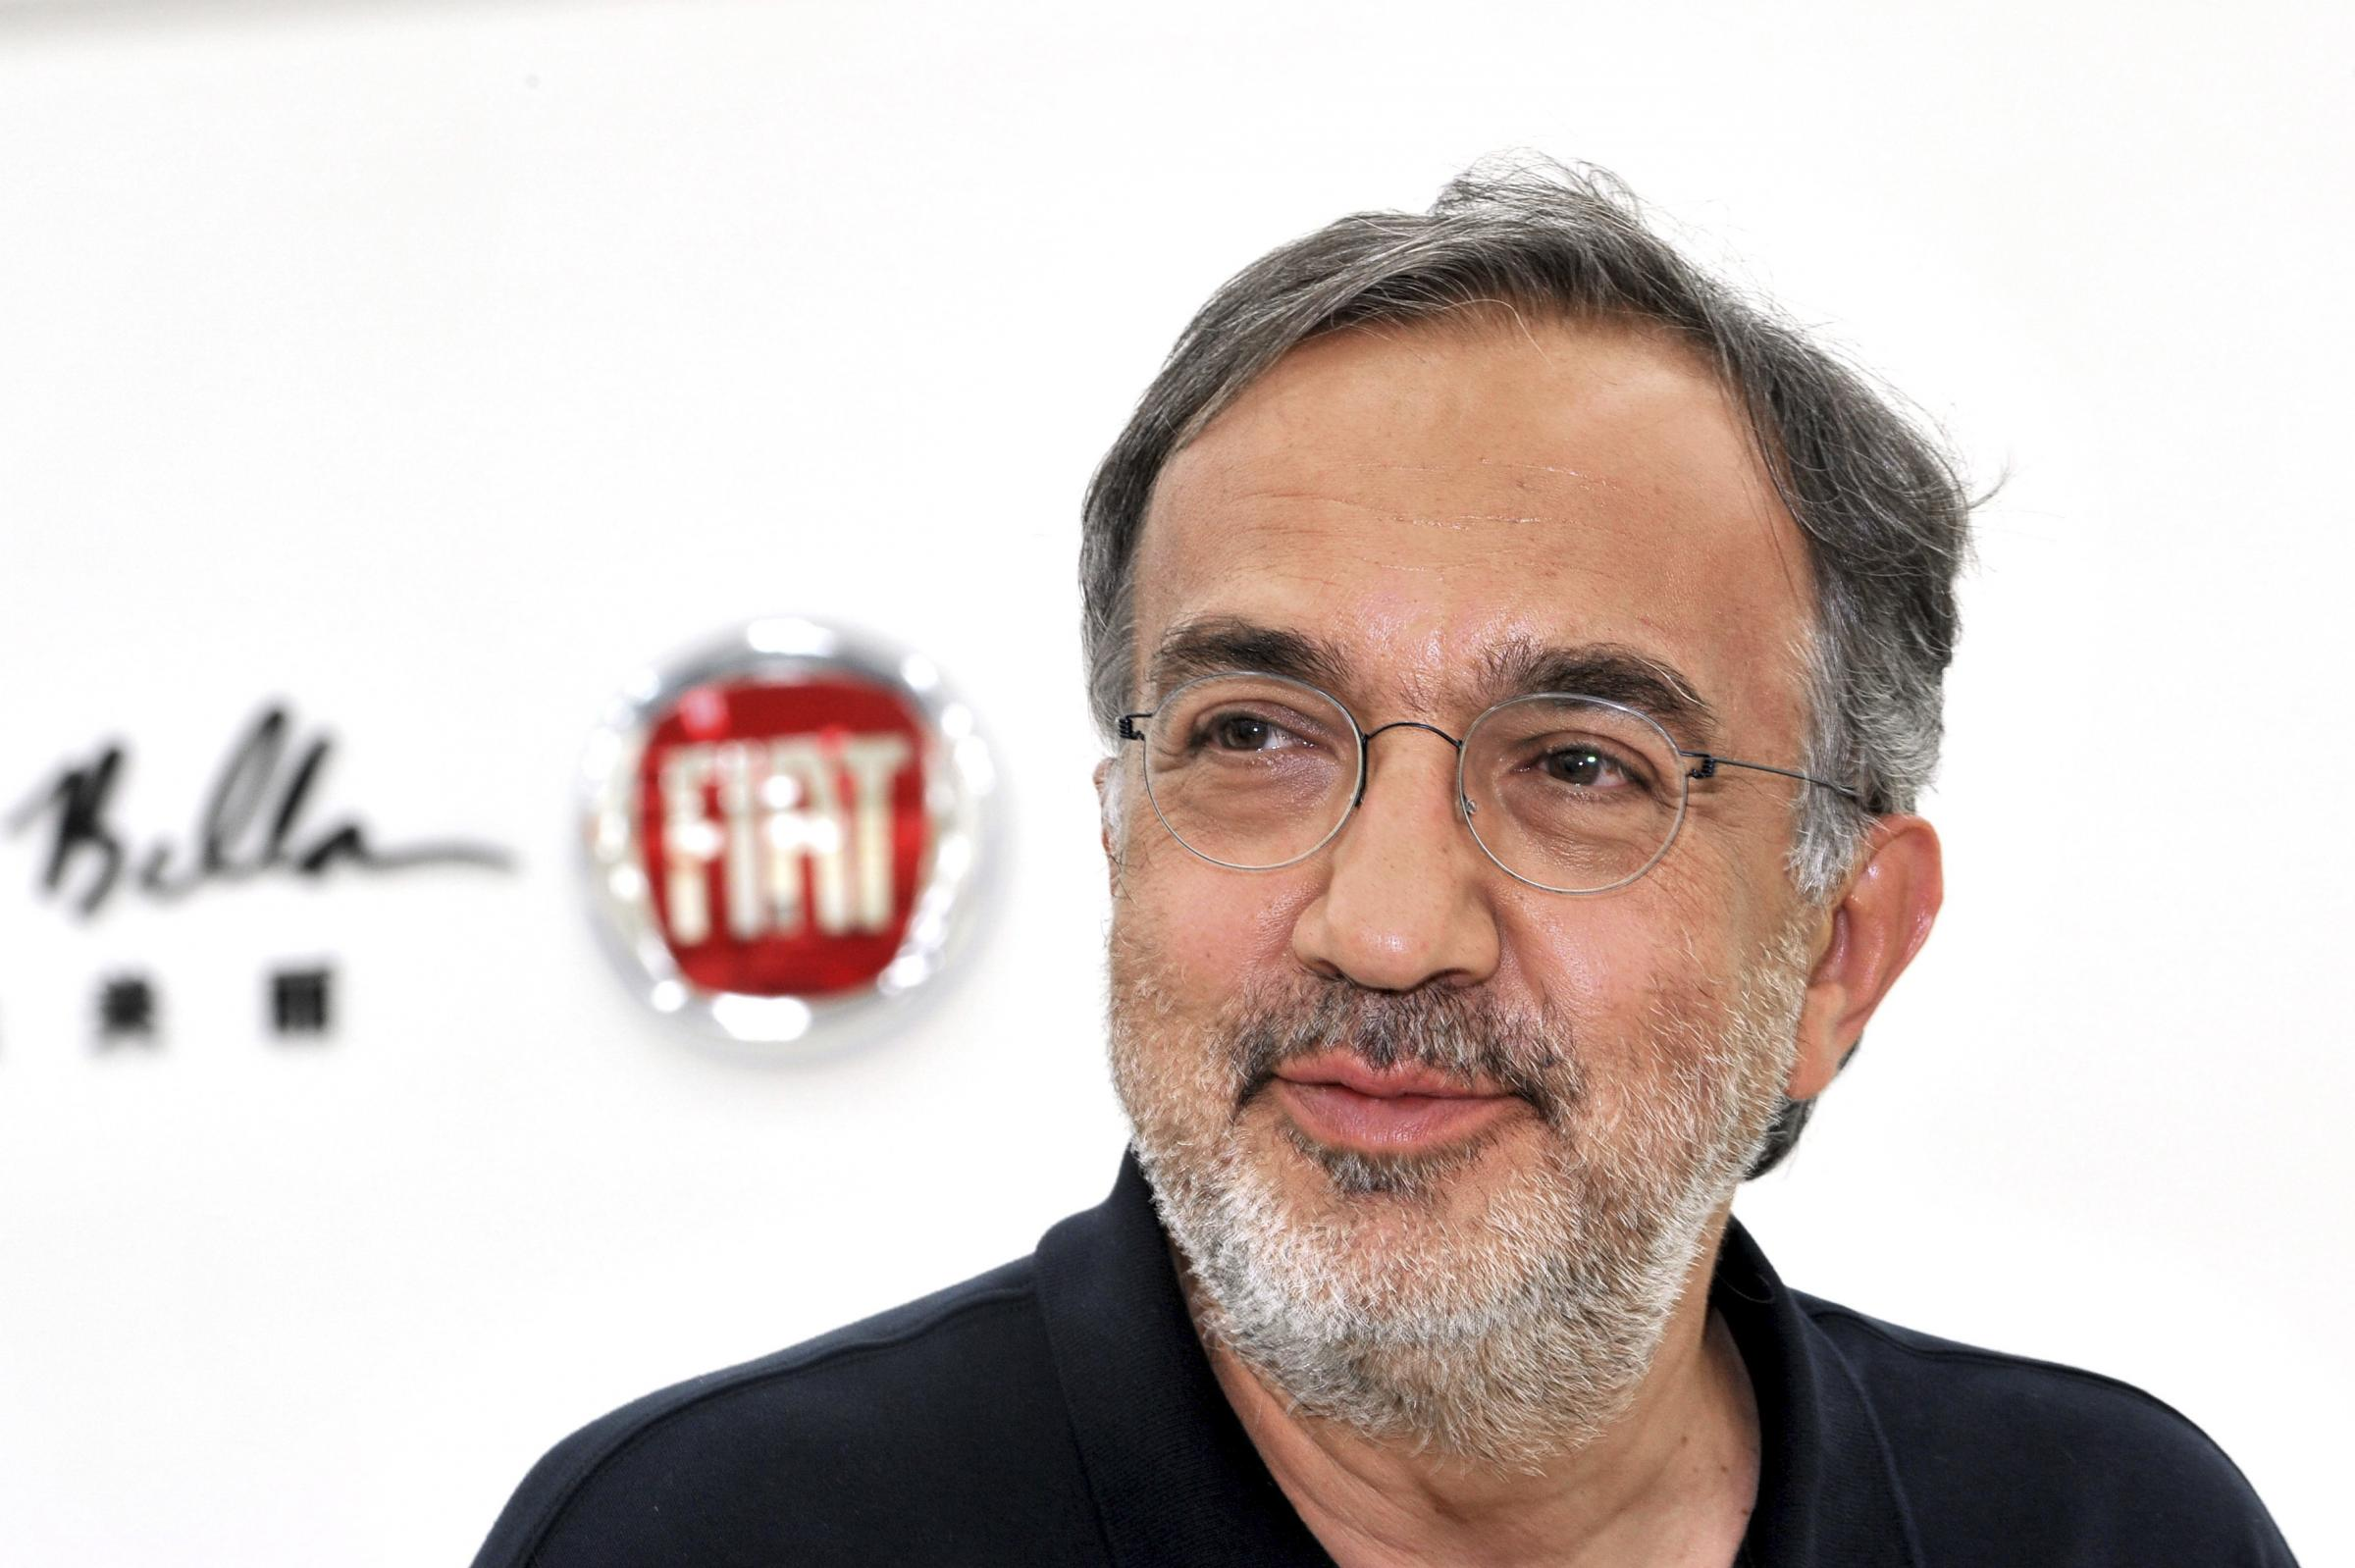 Sergio Marchionne, CEO of Fiat SpA, speaks during an interview at the Italian auto maker's joint venture plant with Guangzhou Automobile Corp (GAC) in Changsha, capital of central China's Hunan province, Thursday June 28, 2012. Fiat-Chrysler APAC announced the start of production of the Fiat Viaggio at the GAC-Fiat's joint venture facility in China. (AP Photo) CHINA OUT